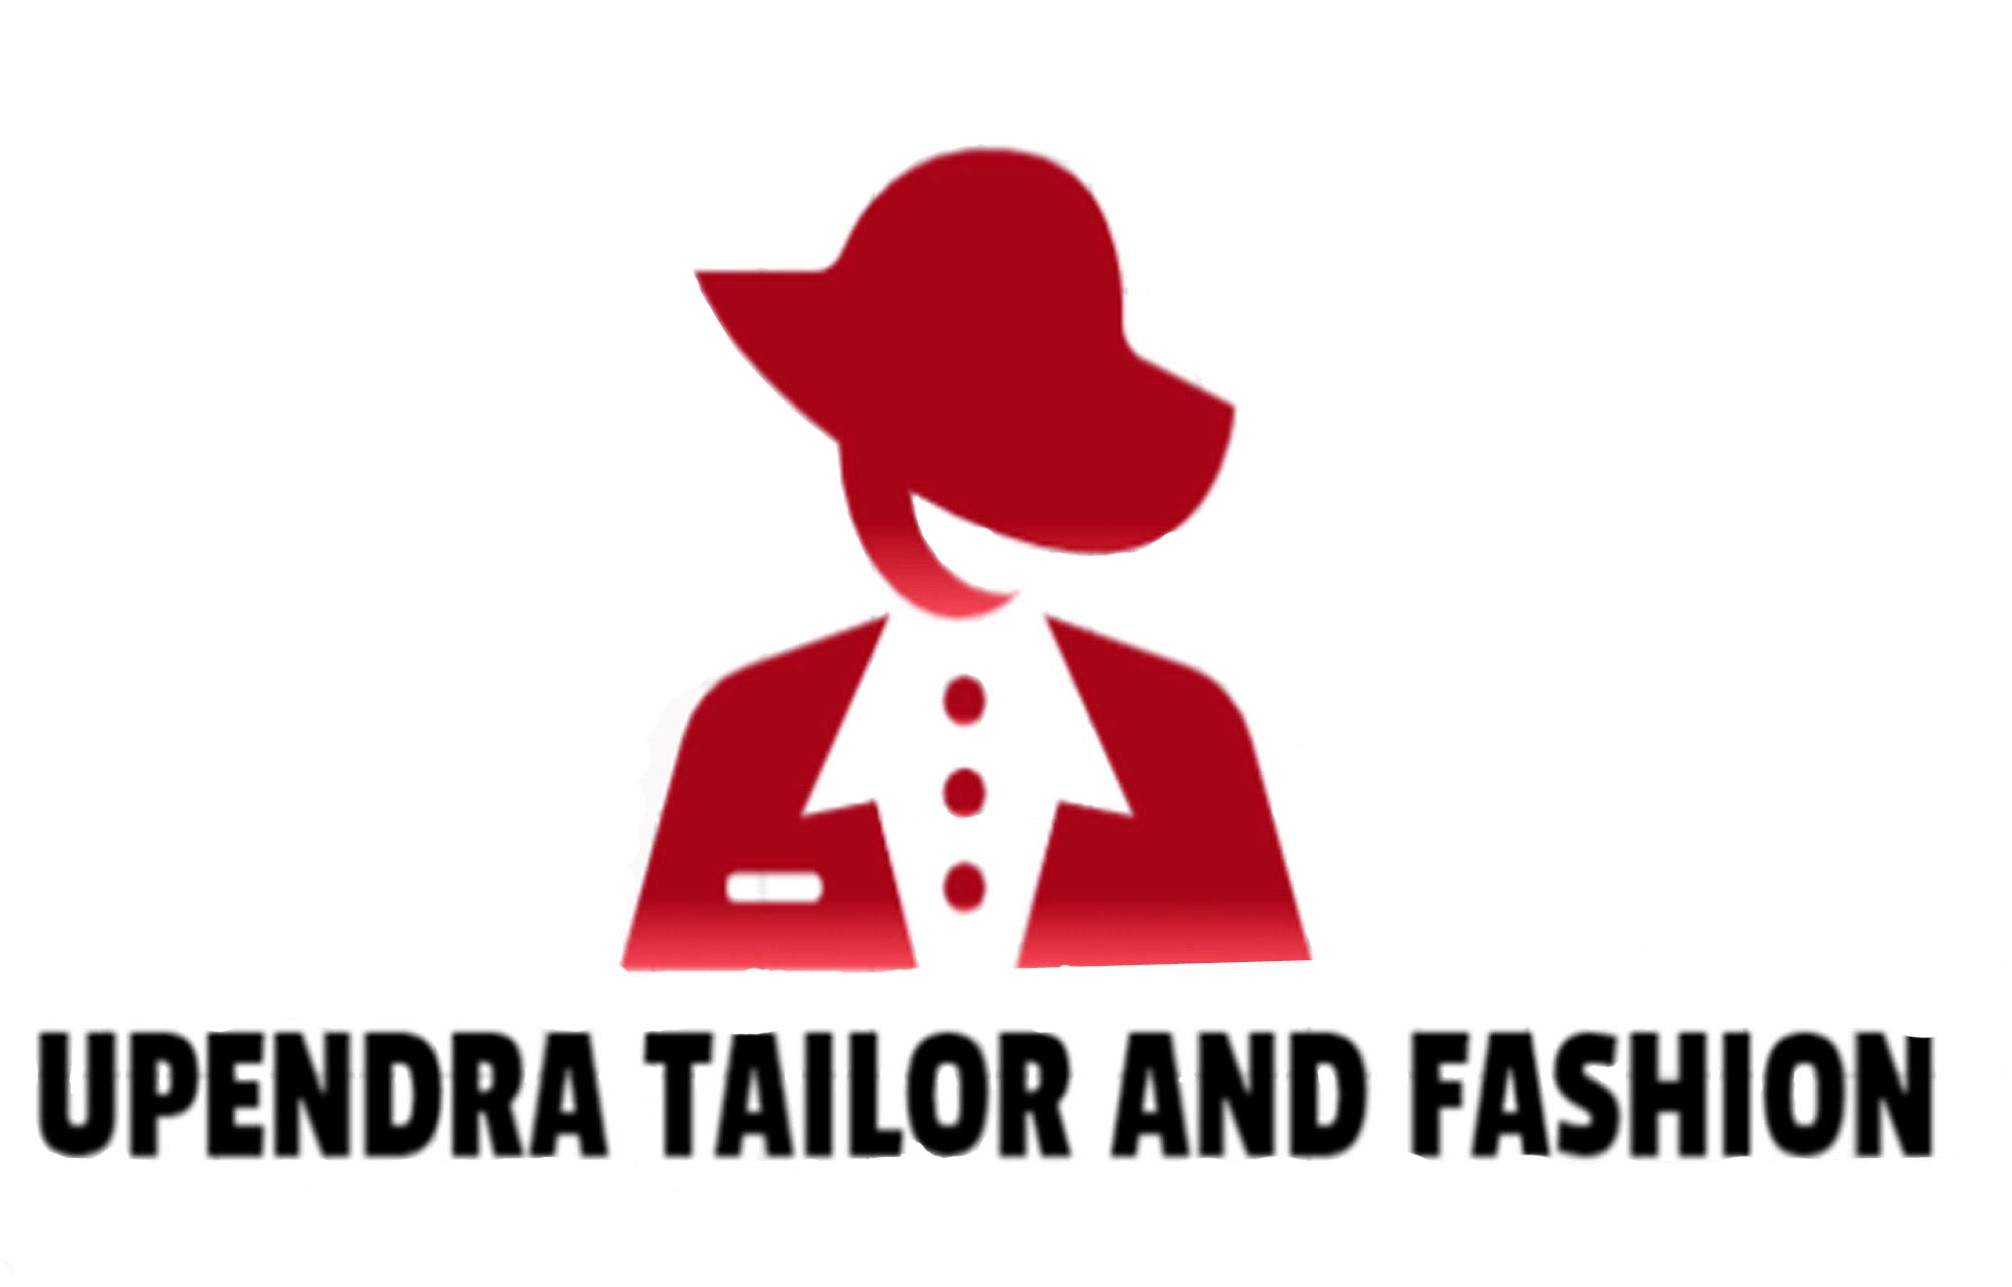 UPENDRA TAILOR & FASHION